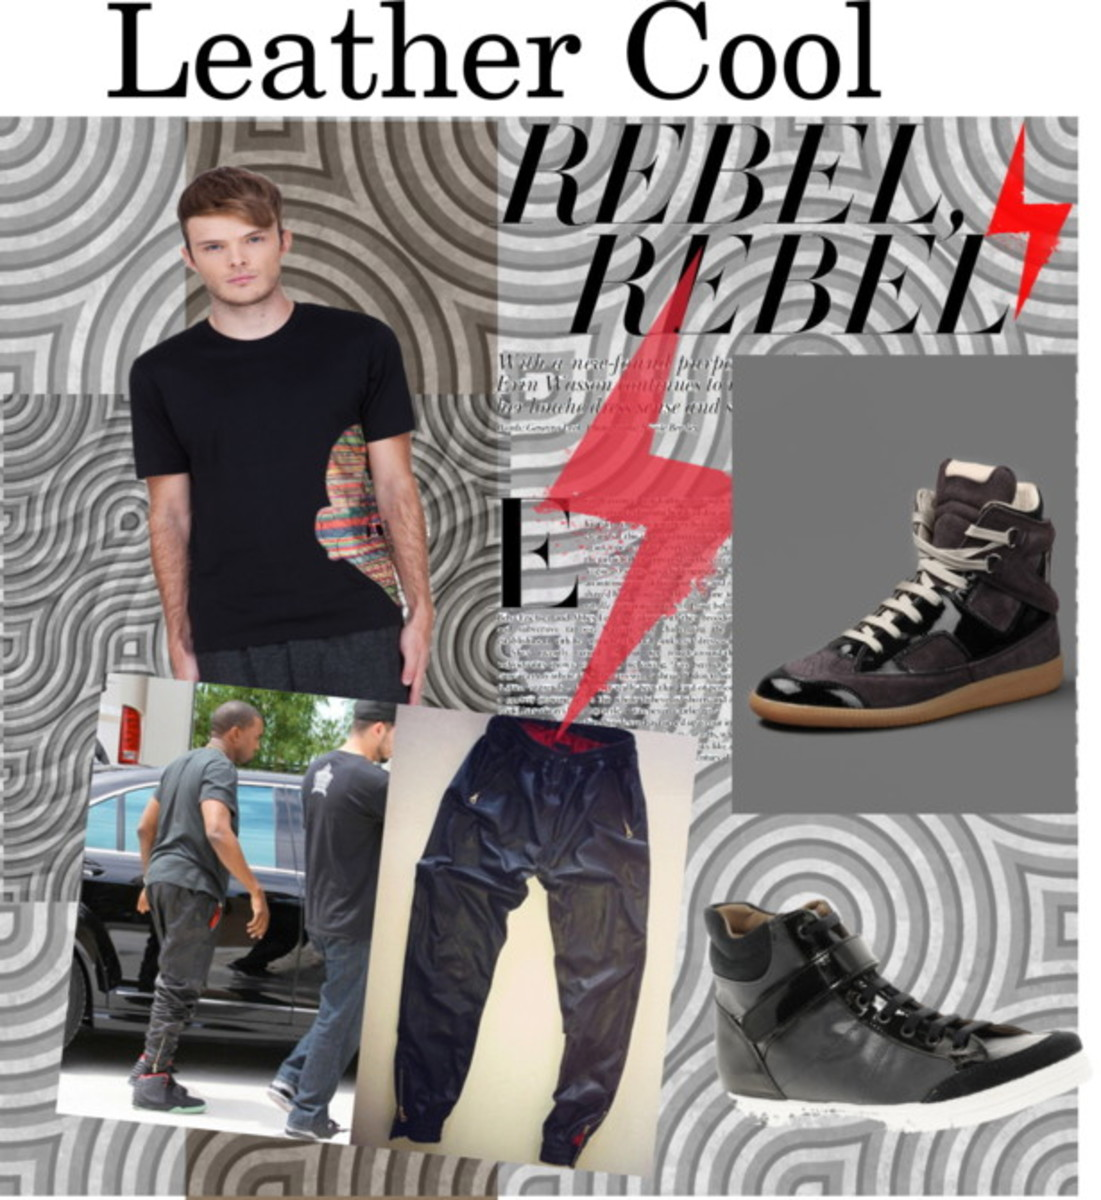 Leather Cool